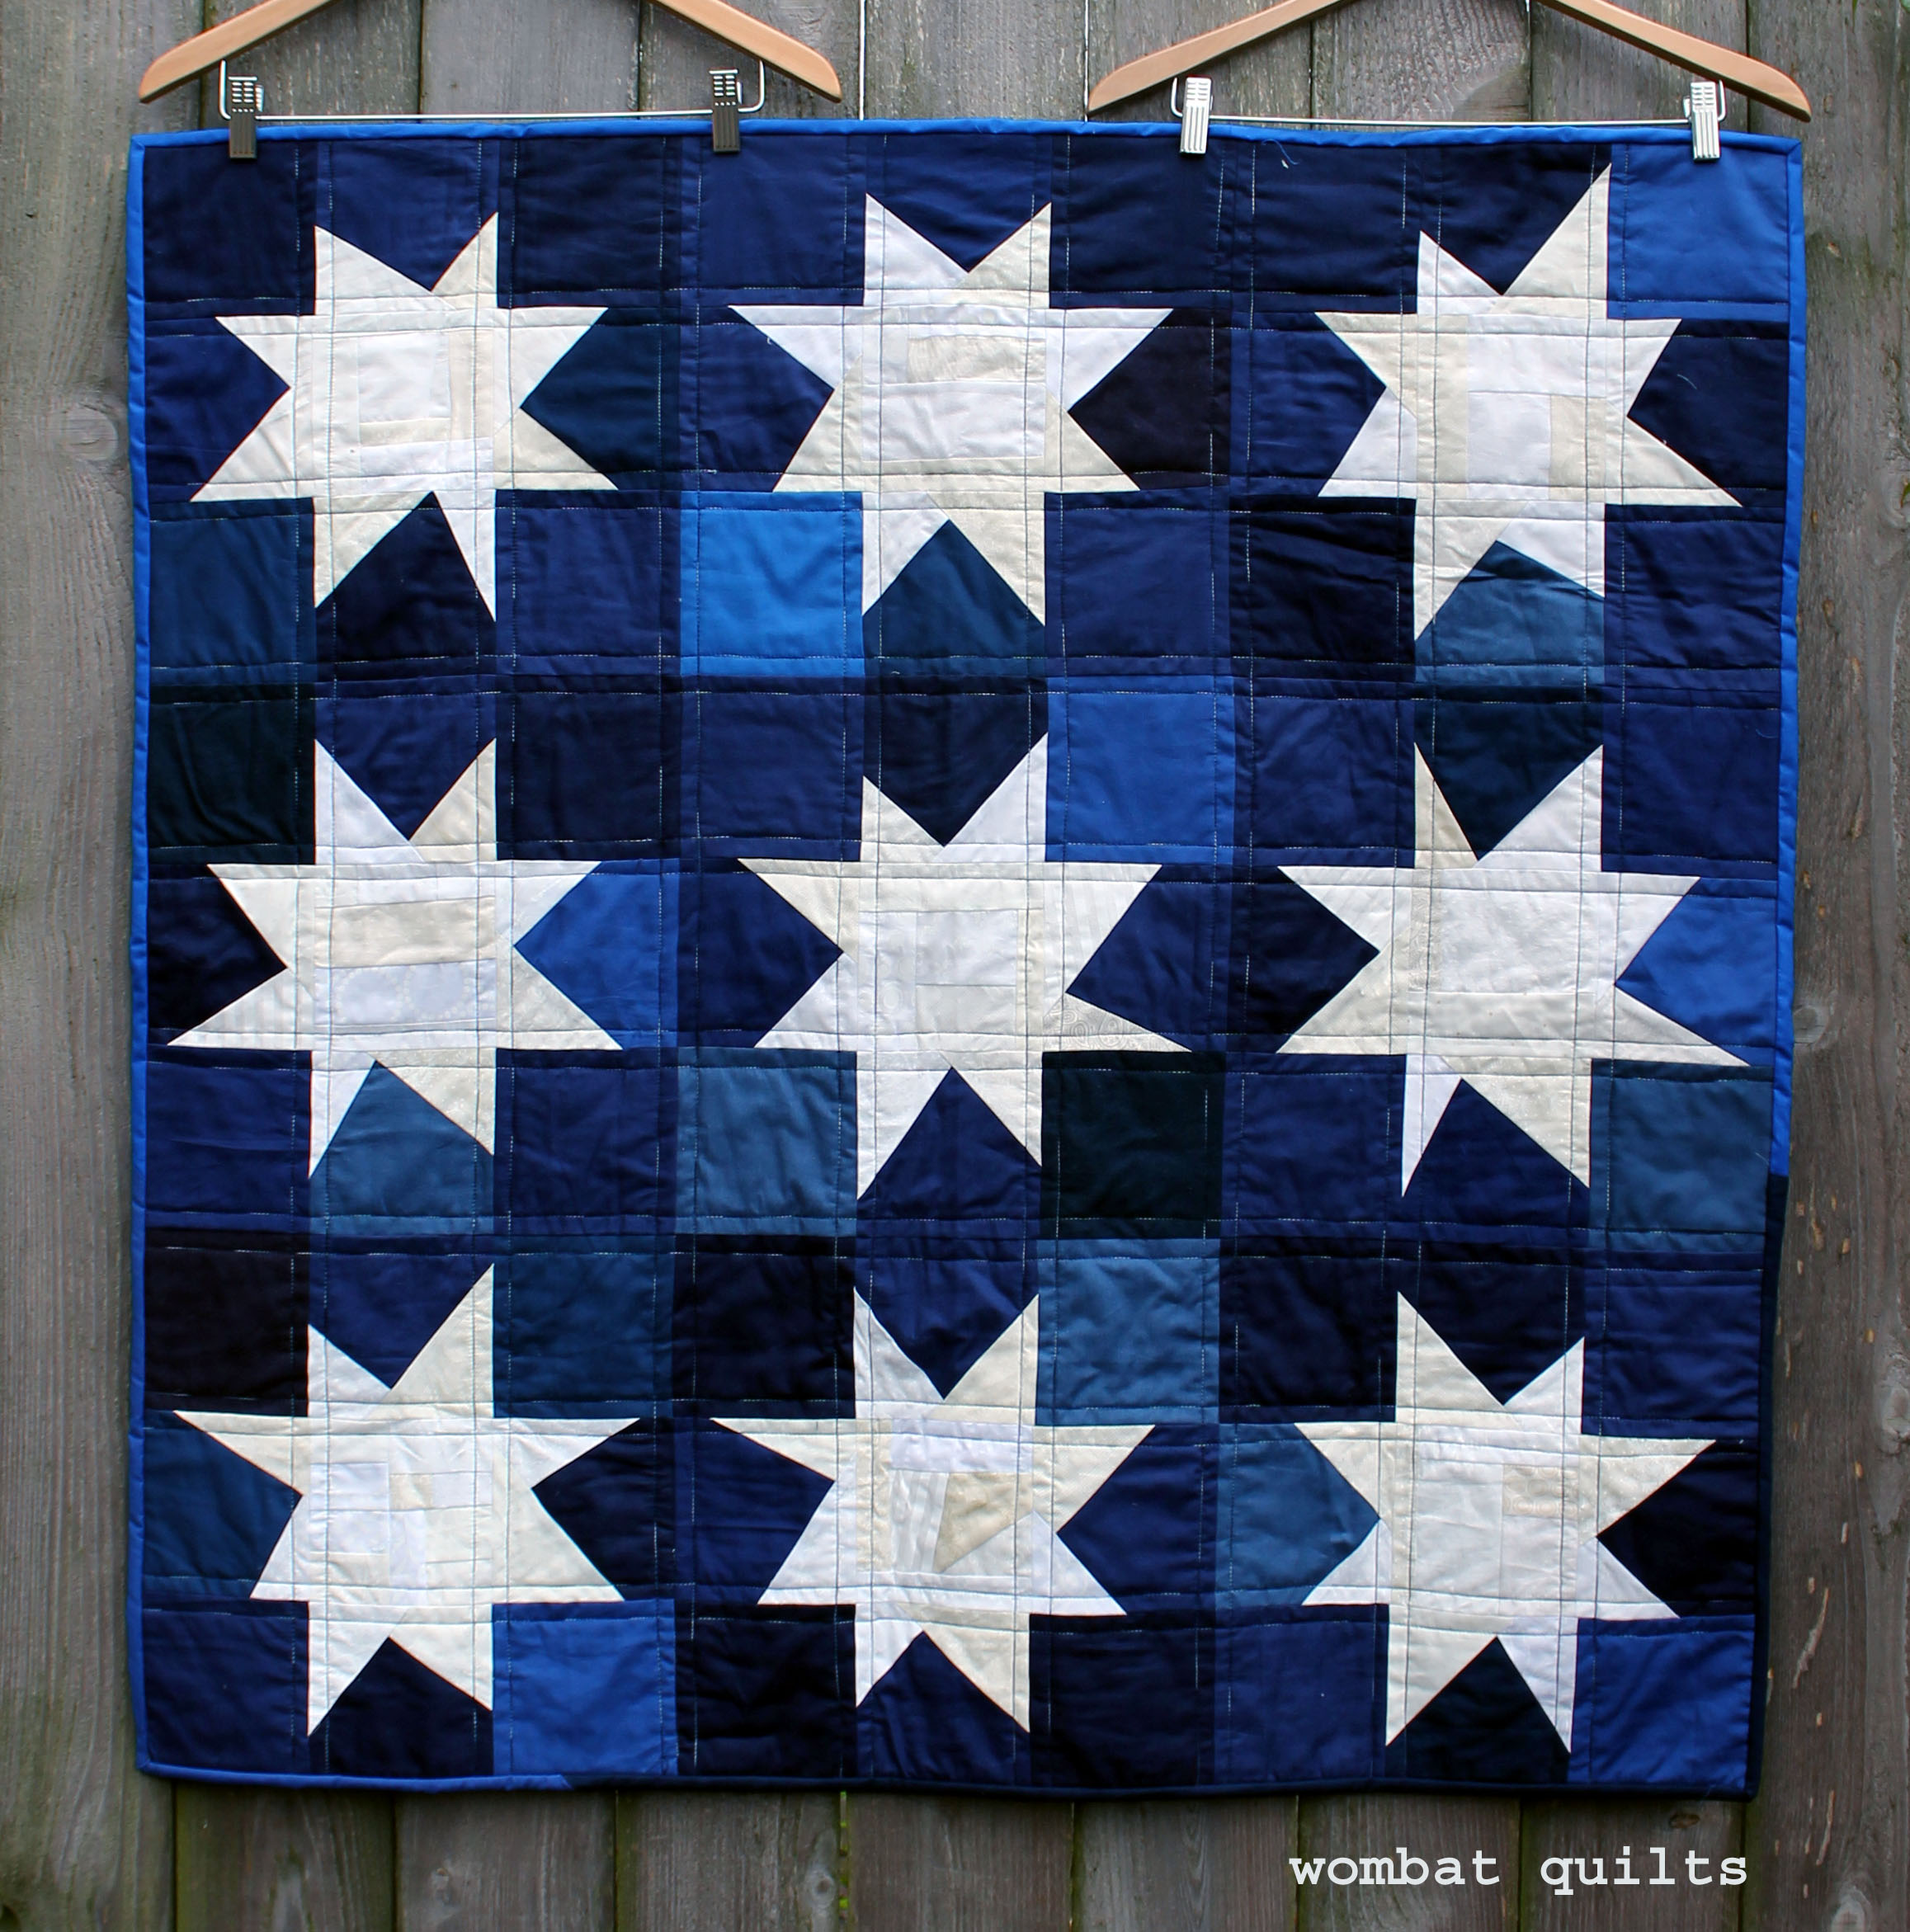 right a white star image wombat everybody quilts loves quilt wonky quilting